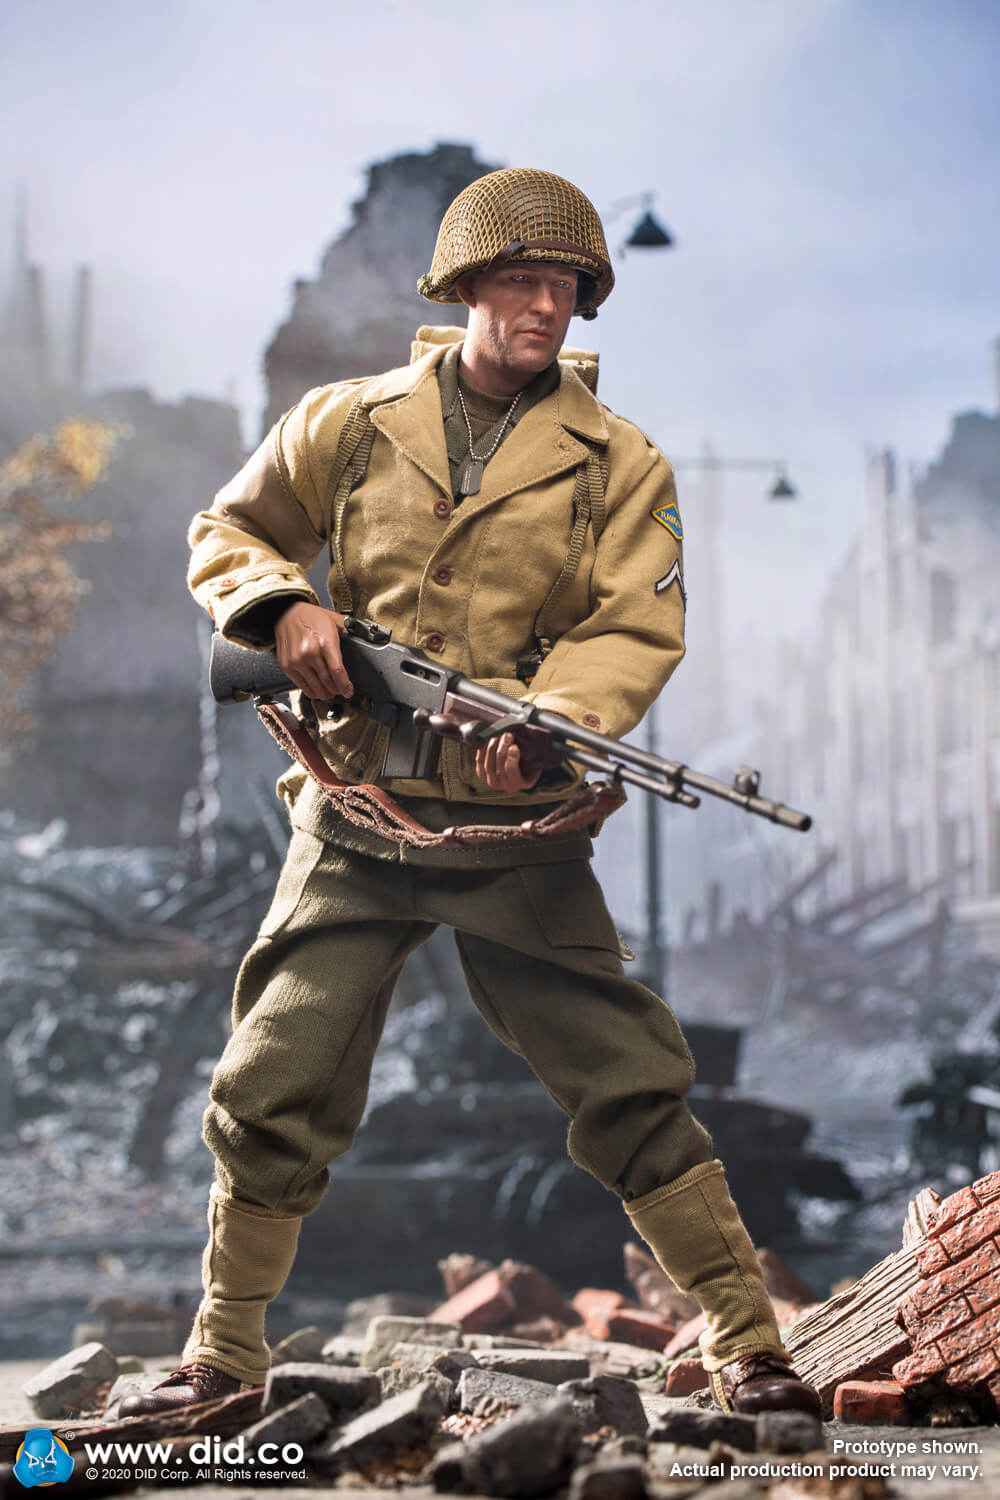 male - NEW PRODUCT: DiD: A80141 WWII US 2nd Ranger Battalion Private First Class Reiben 1/6 scale figure Did-pr12